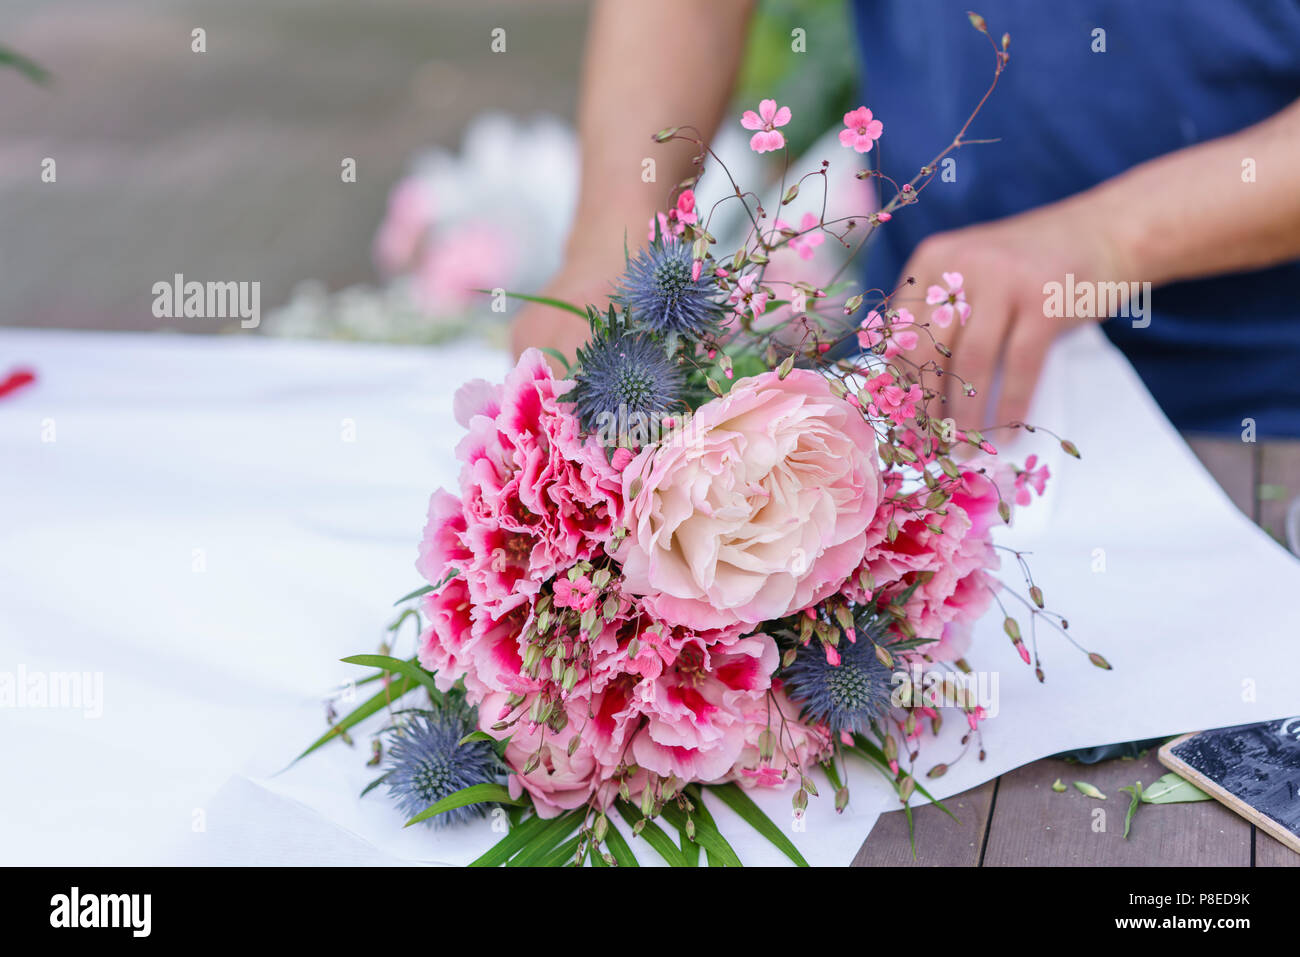 Creating The Bouquet Stock Photos & Creating The Bouquet Stock ...